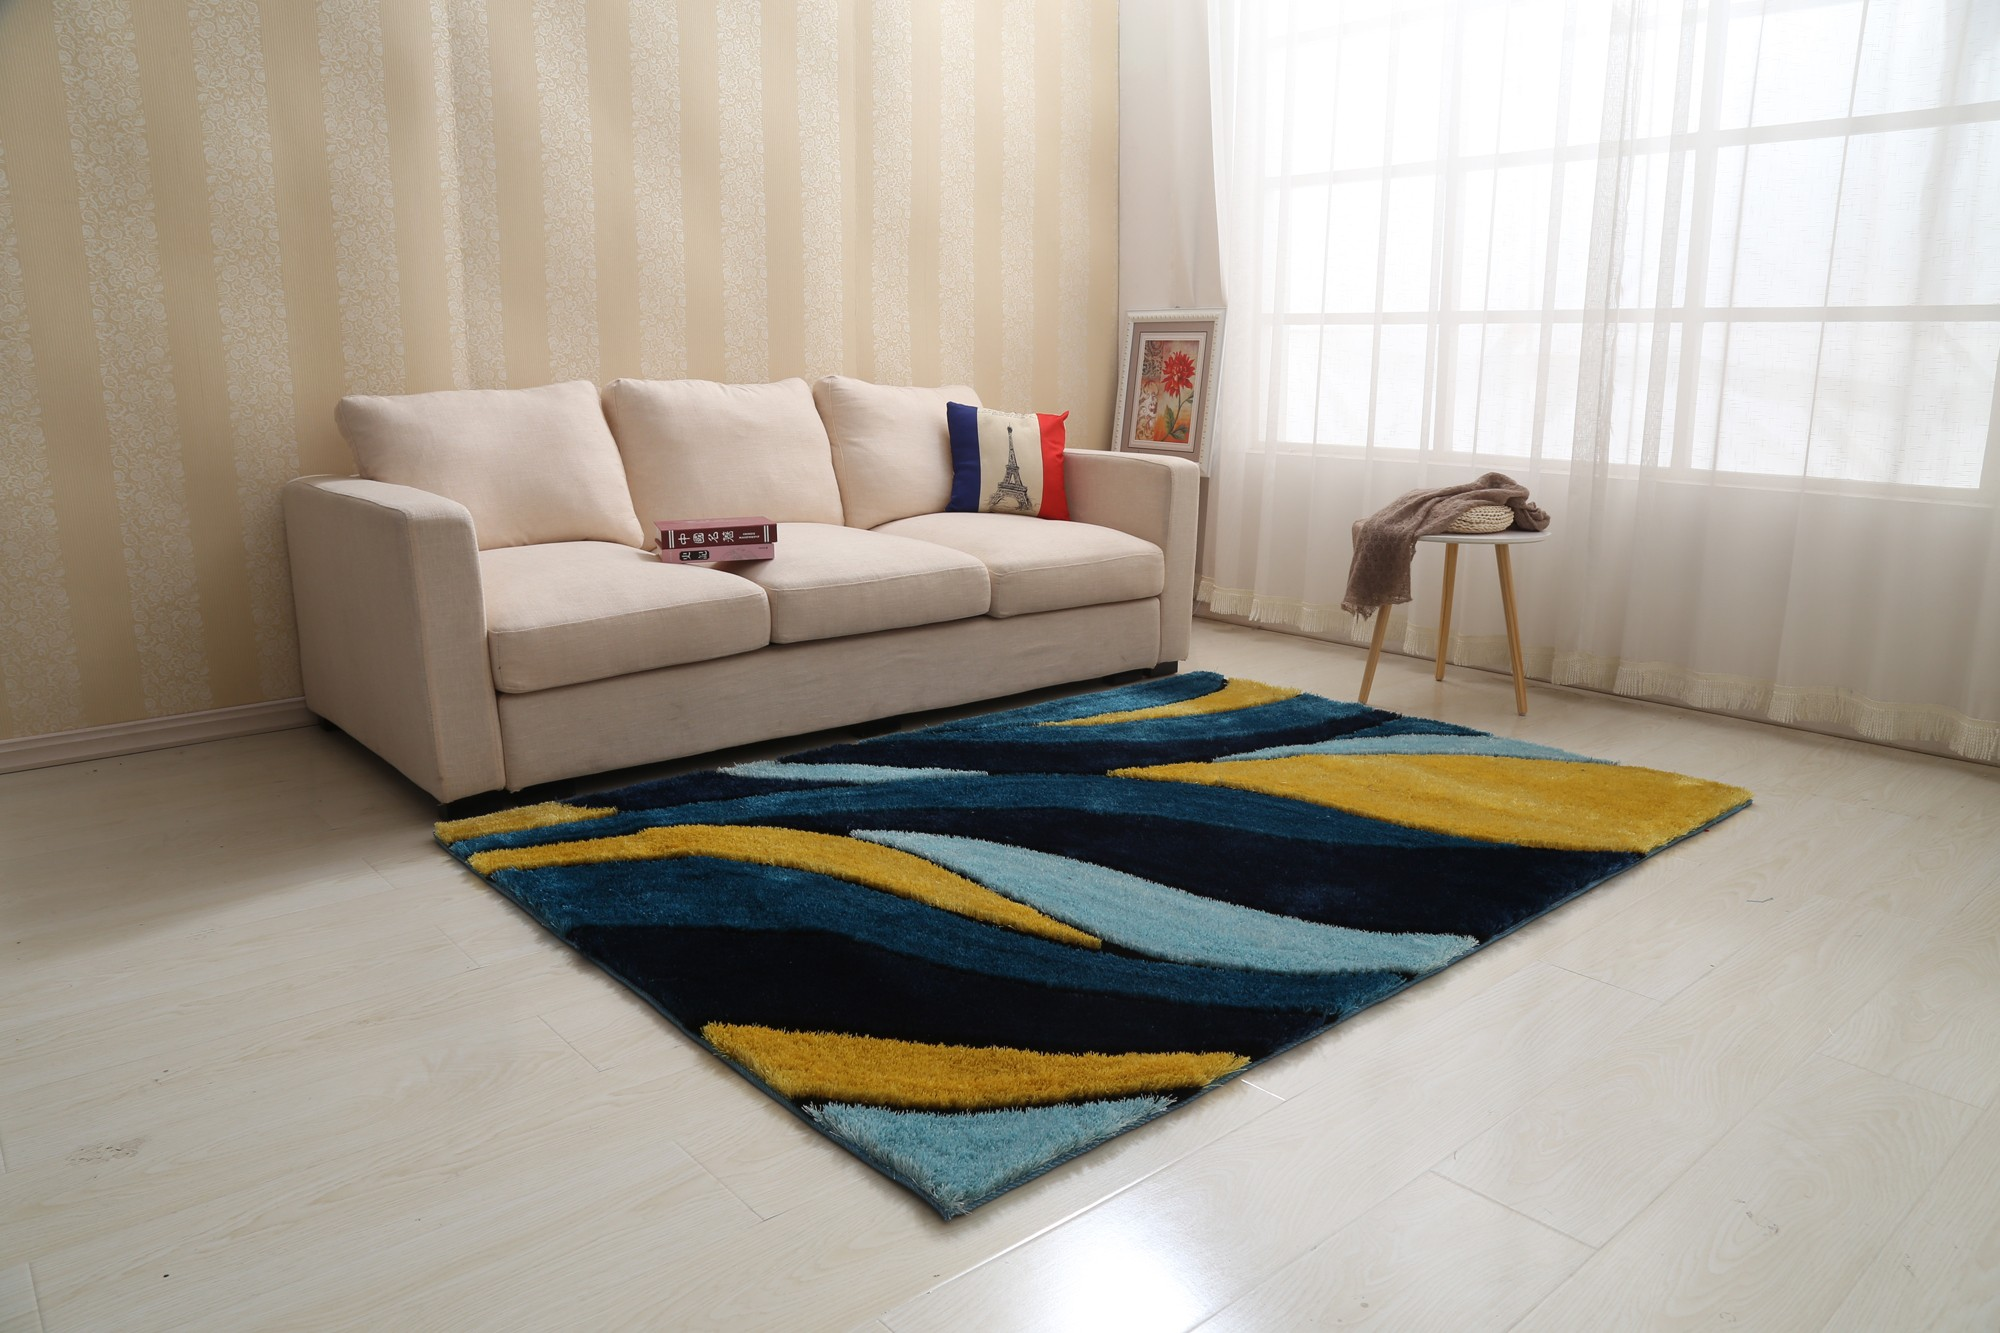 Picture of: Aria Yellow And Navy Blue Soft Pile Shaggy Area Rug 8 X 11 1stopbedrooms